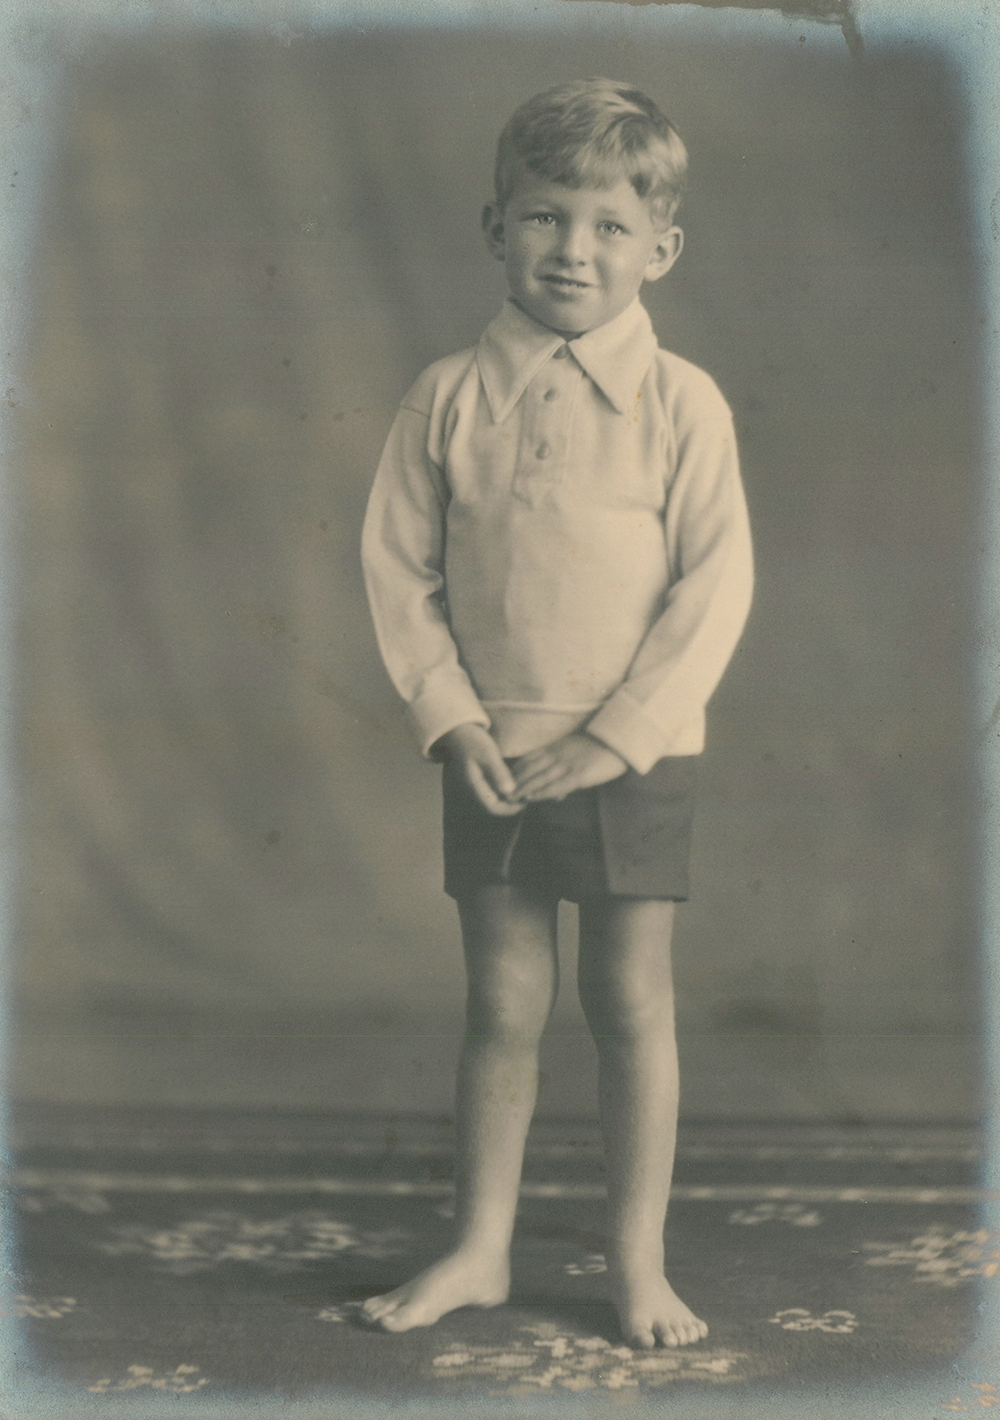 Sylvester Stein, age six. Courtesy of Sarah Cawkwell.